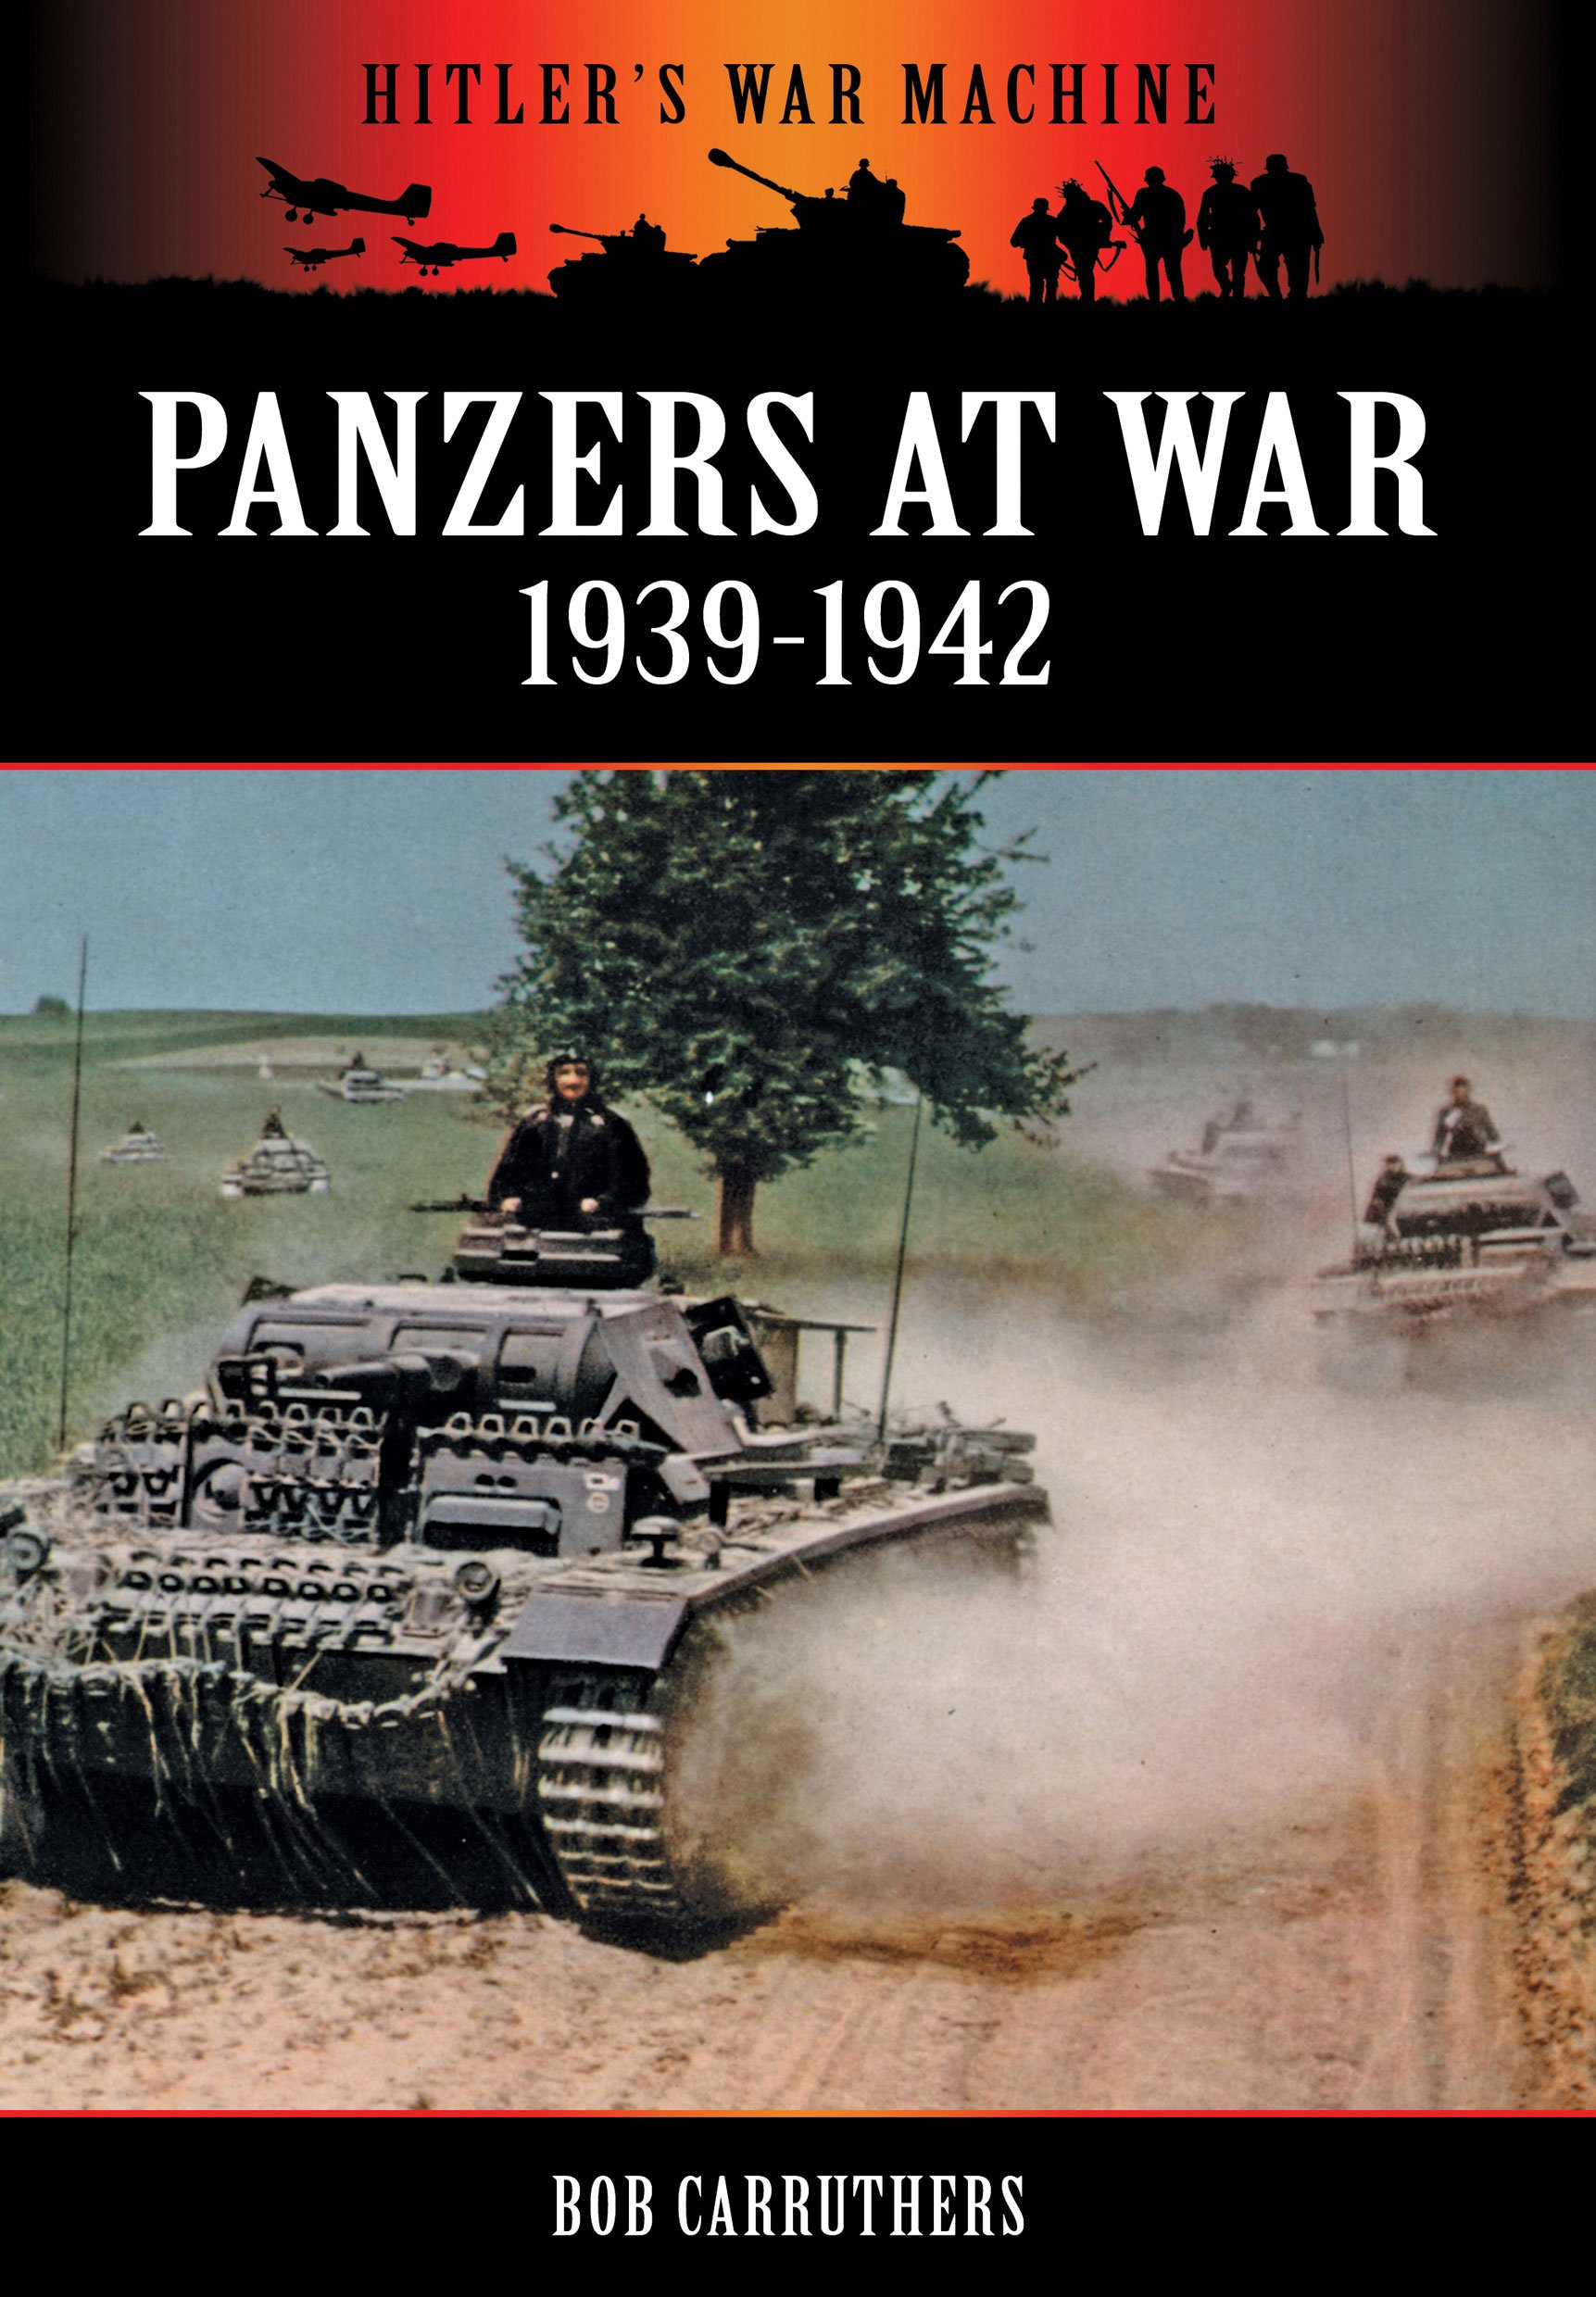 Panzers at War 1939-1942 (Hitler's War Machine) free download